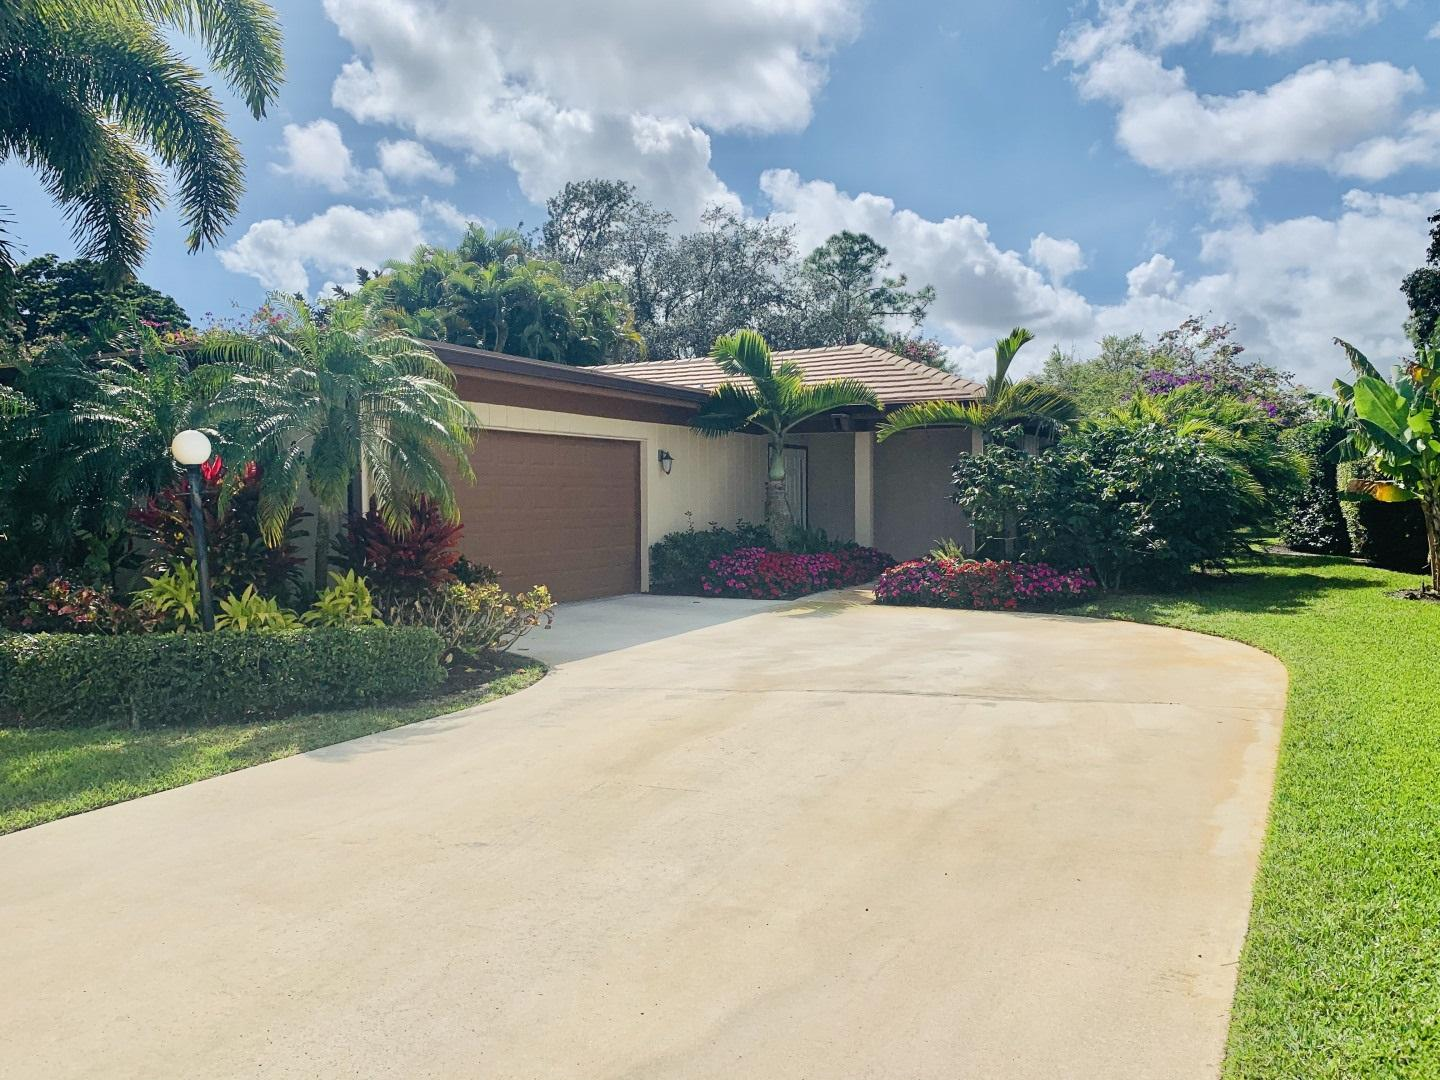 6694 Eastpointe Pines Street, Palm Beach Gardens, Florida 33418, 3 Bedrooms Bedrooms, ,3 BathroomsBathrooms,A,Single family,Eastpointe Pines,RX-10604638